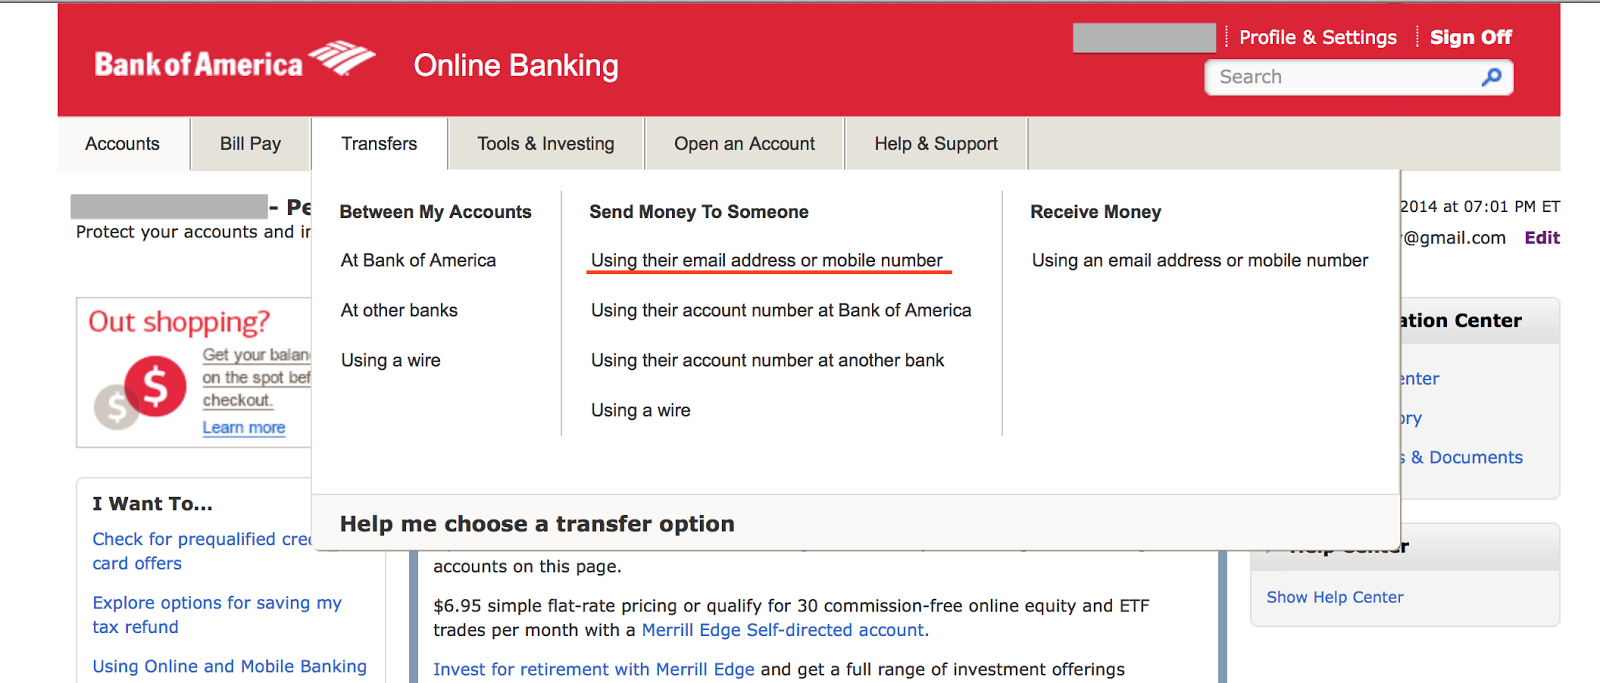 Log In To Your Online Bank Select Transfers Send Money Someone Using Their Email Address Or Mobile Number